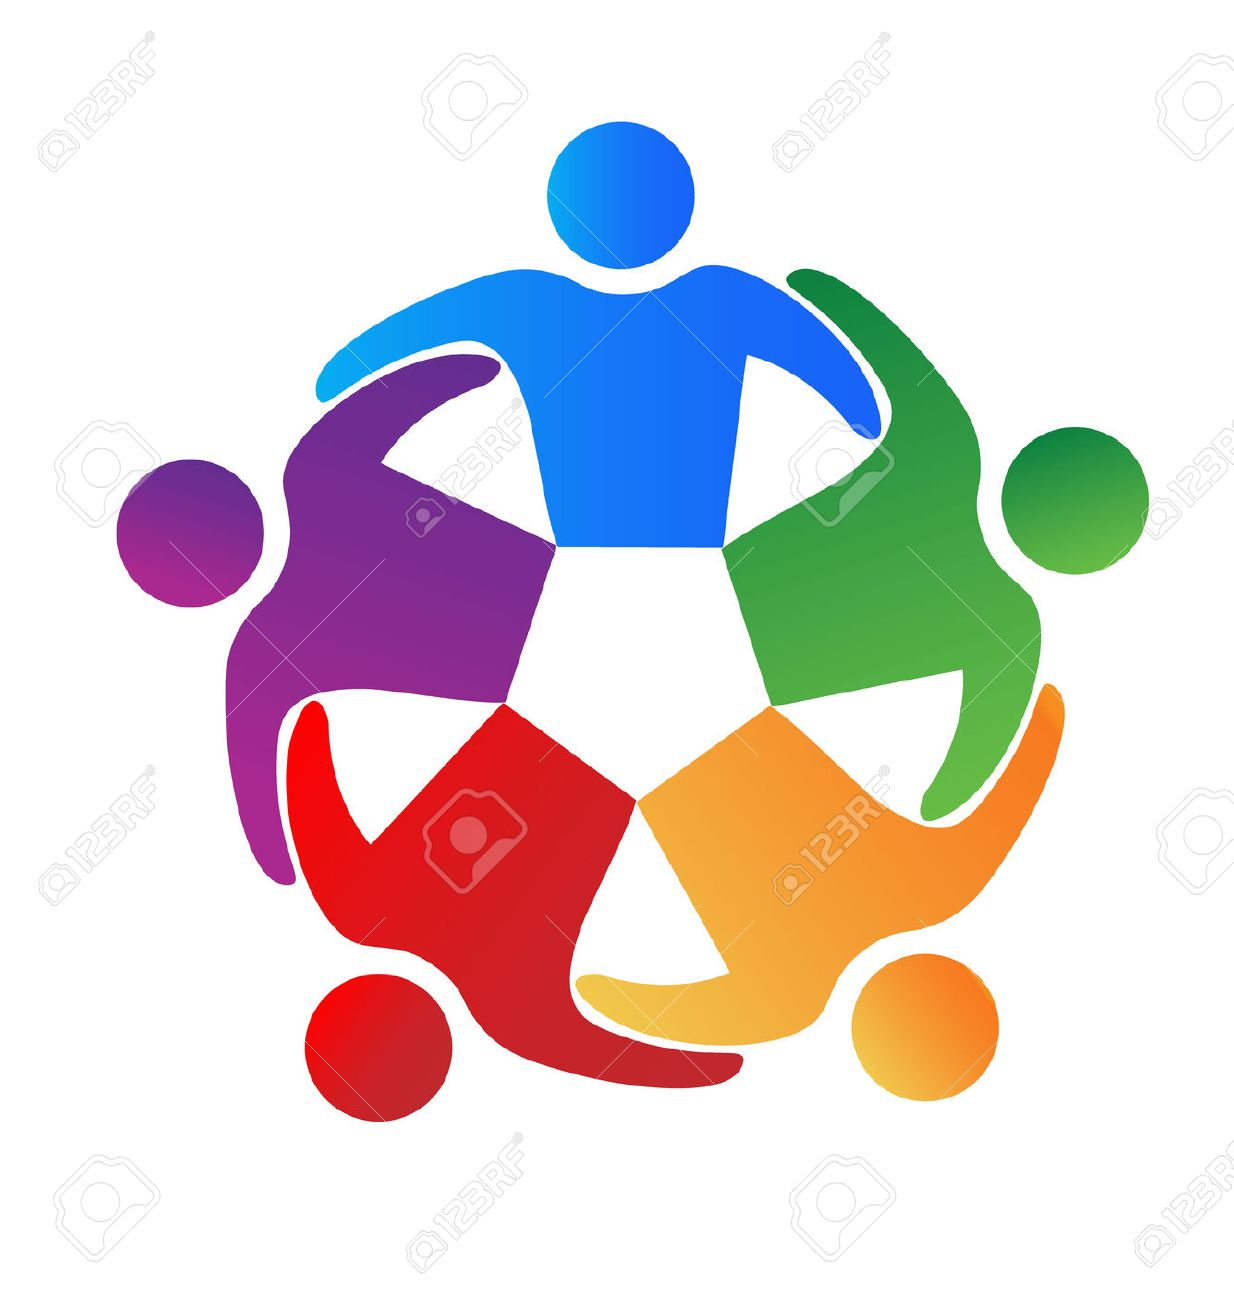 office politics images stock pictures royalty office office politics business team hug people can represent teamwork partners family